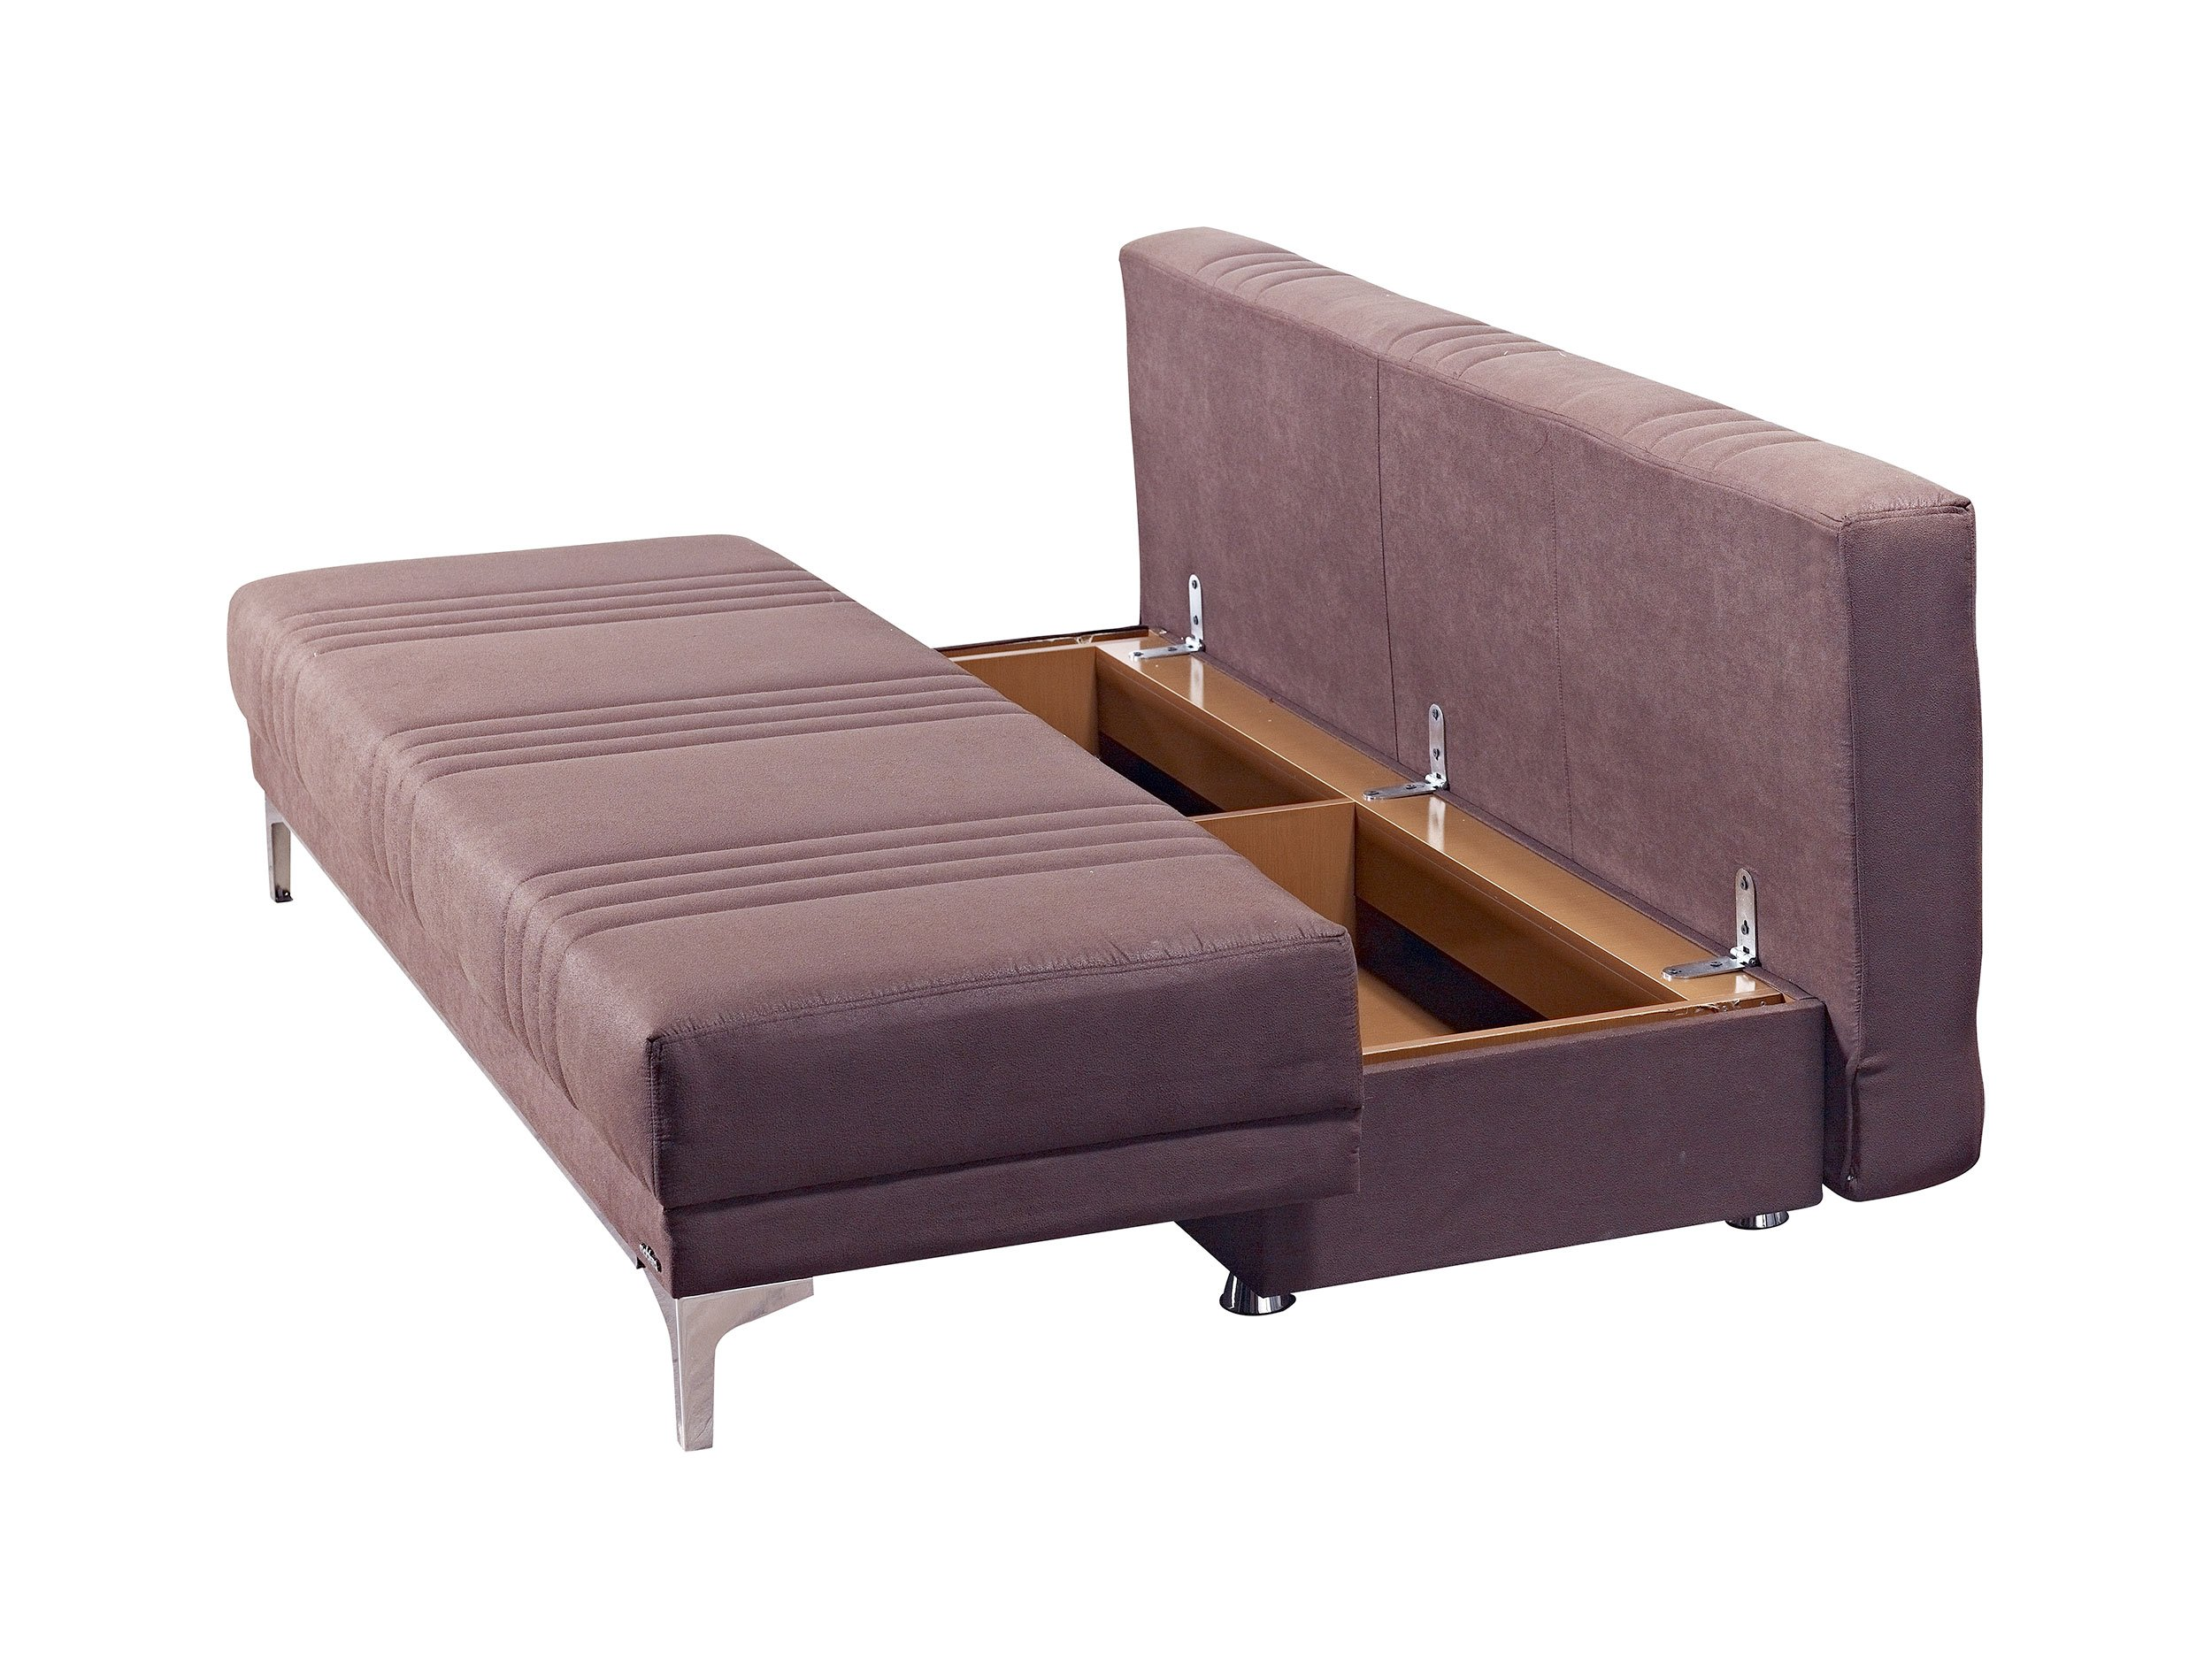 Queen size sofa beds sofa cool queen bed mattress thesofa for Sofa queen bed